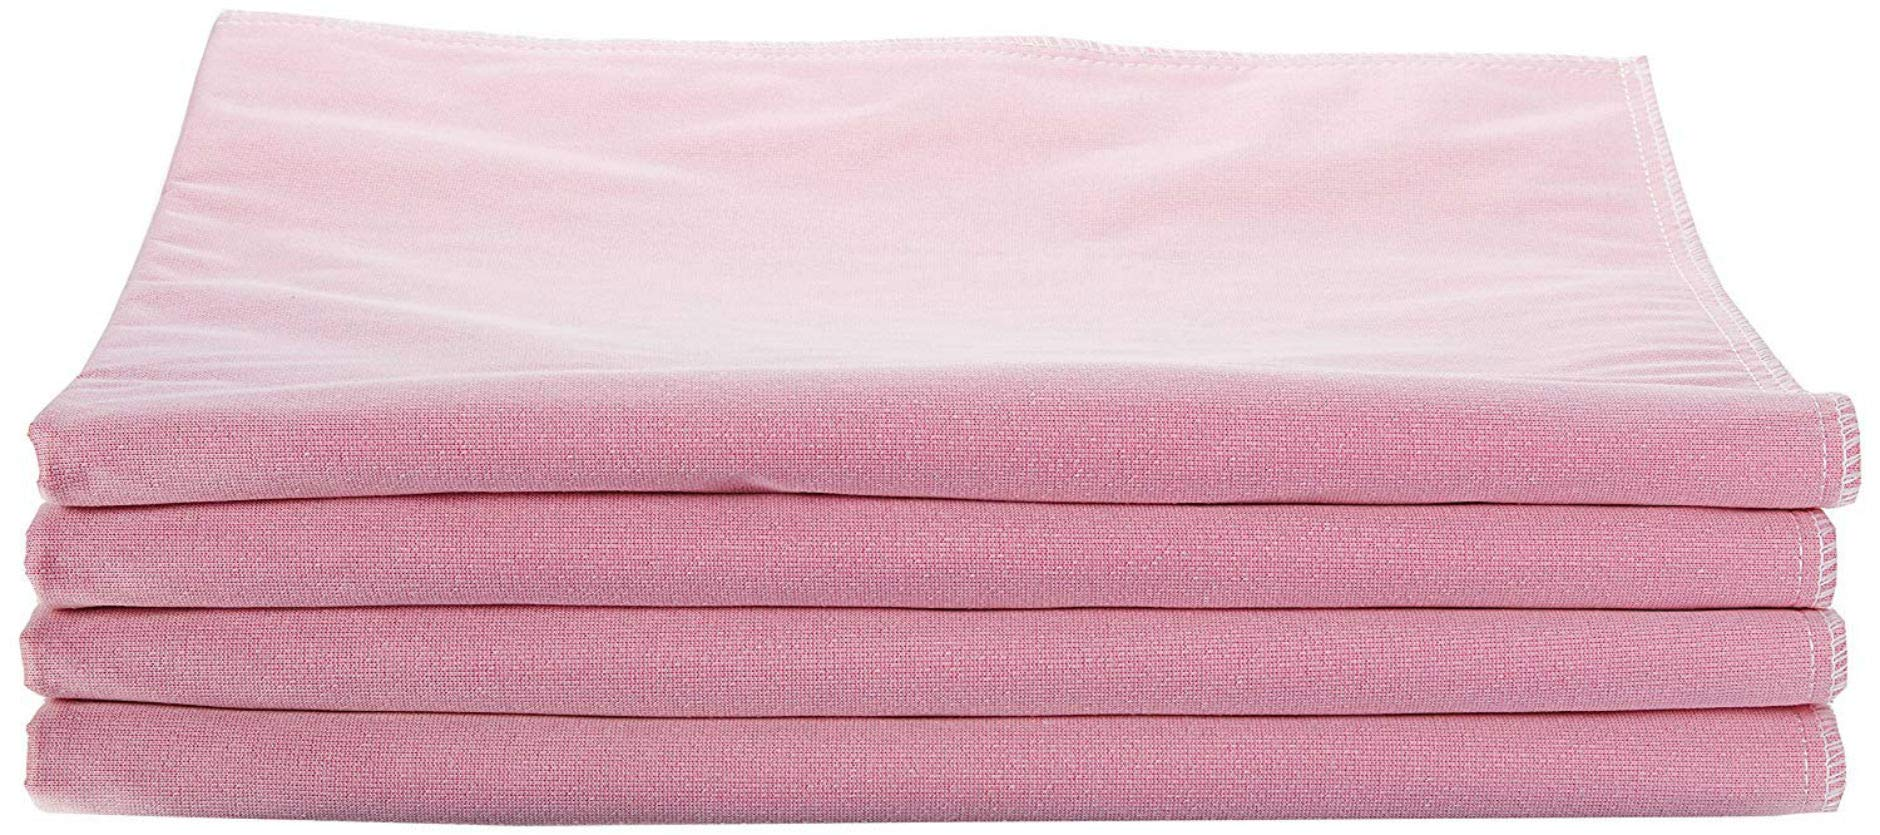 Medline Softnit 300 Washable Underpads, Pack of 4 Large Bed Pads, 34'' x 36'', For use as incontinence bed pads, reusable pet pads, great for dogs, cats, and bunny